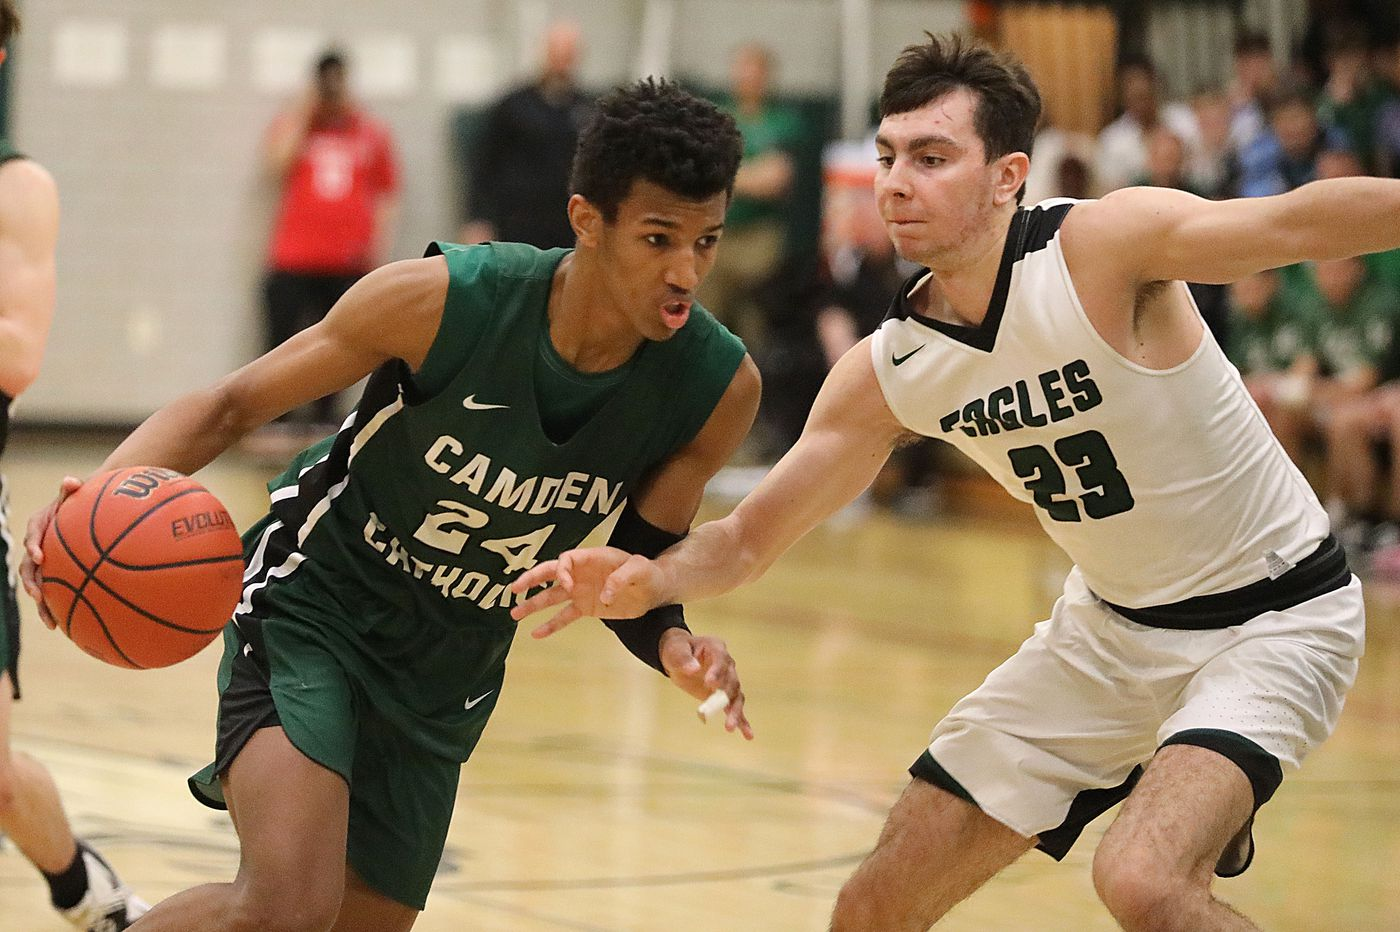 Camden Catholic boys shine in the third period to get past West Deptford